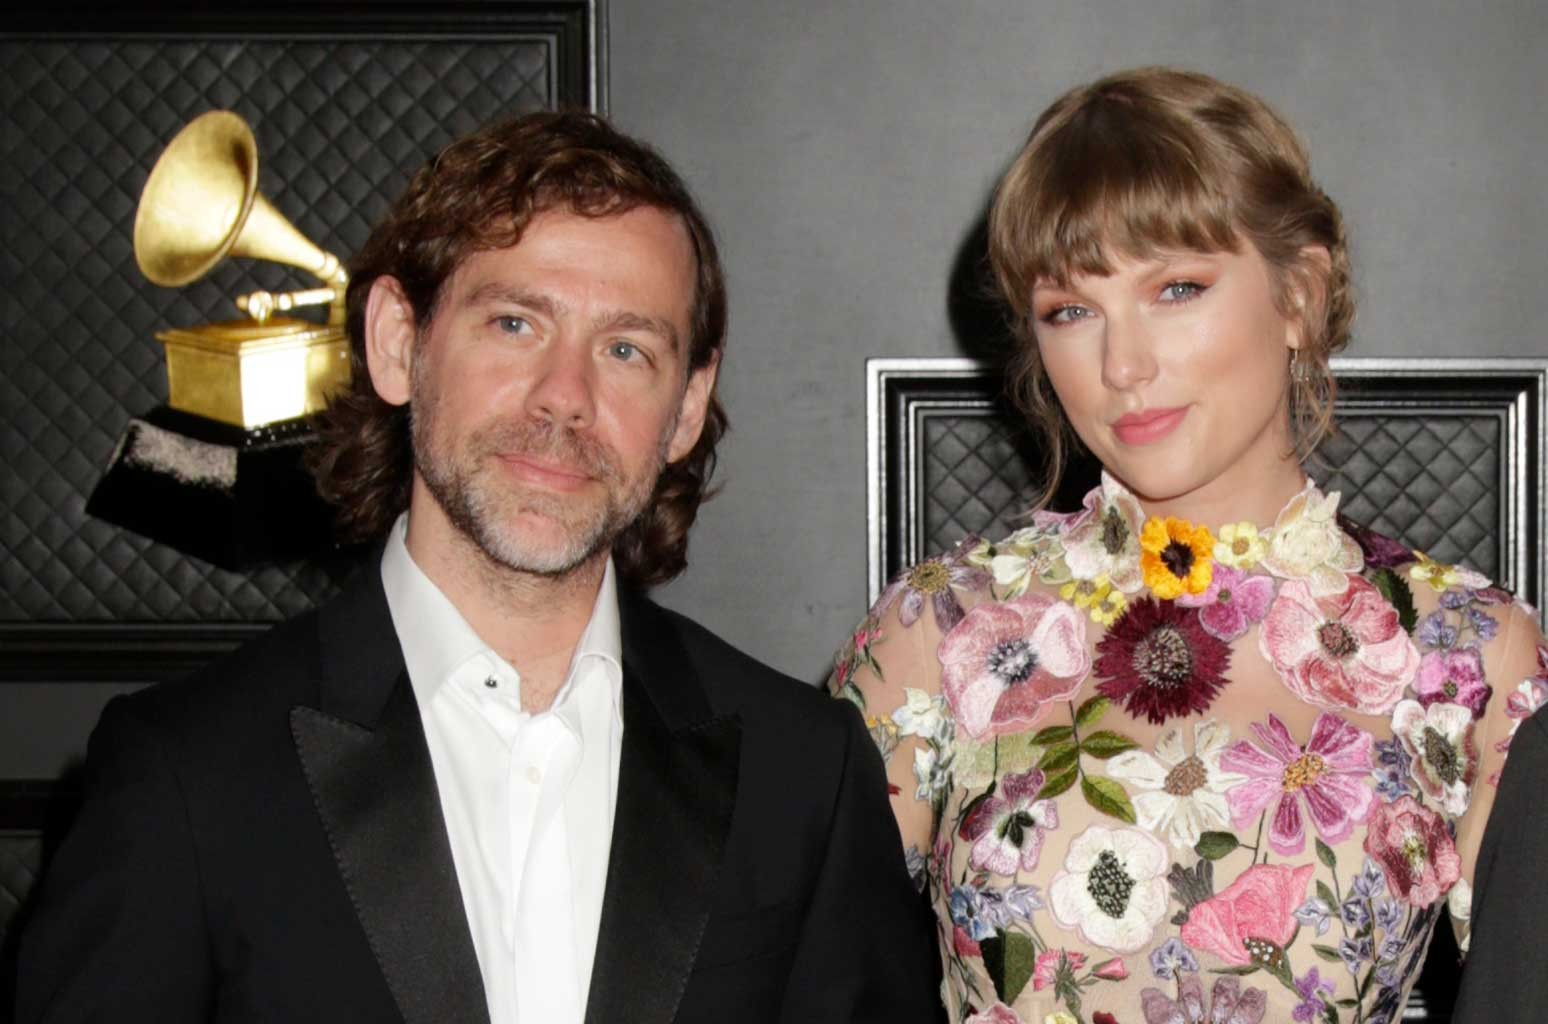 Aaron Dessner and Taylor Swift